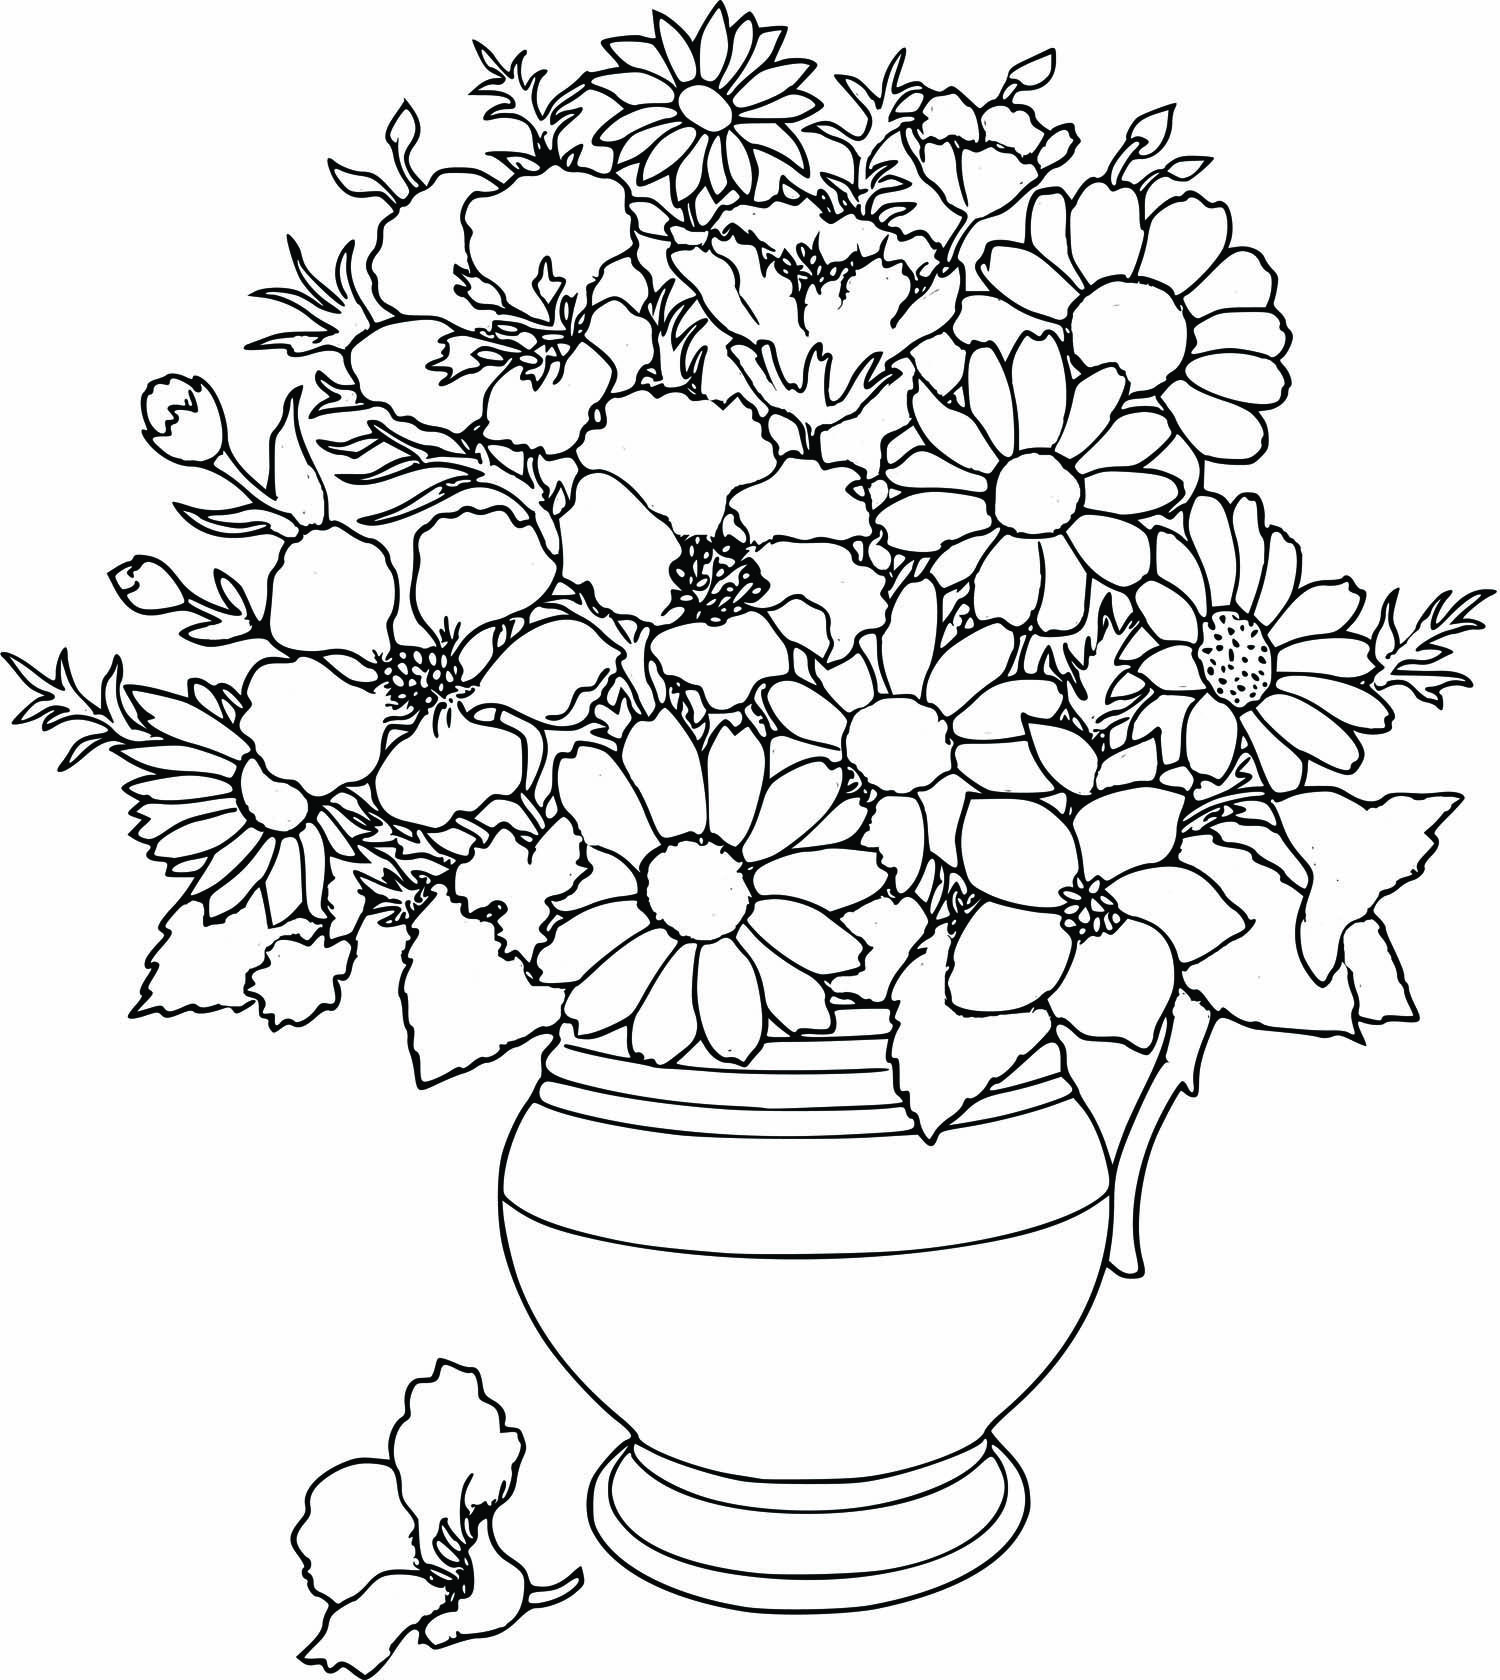 Free Beautifull Flower Coloring Pages | Coloring Pages | Pinterest